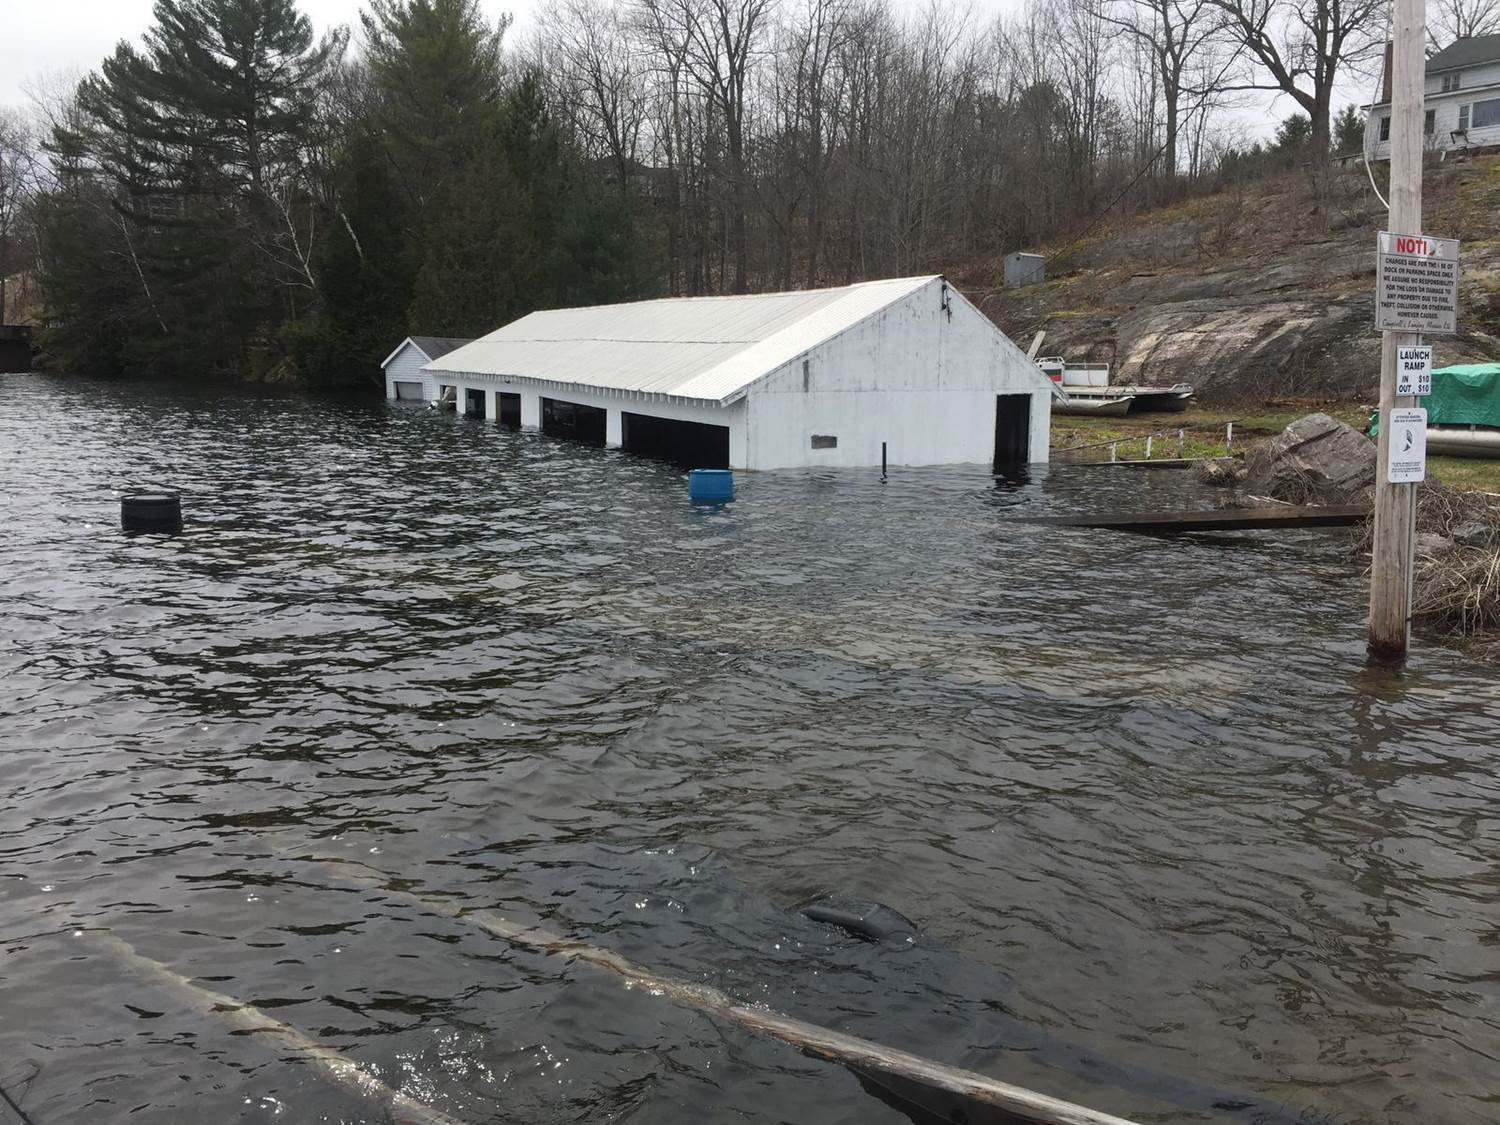 Number 1 boat house - high water